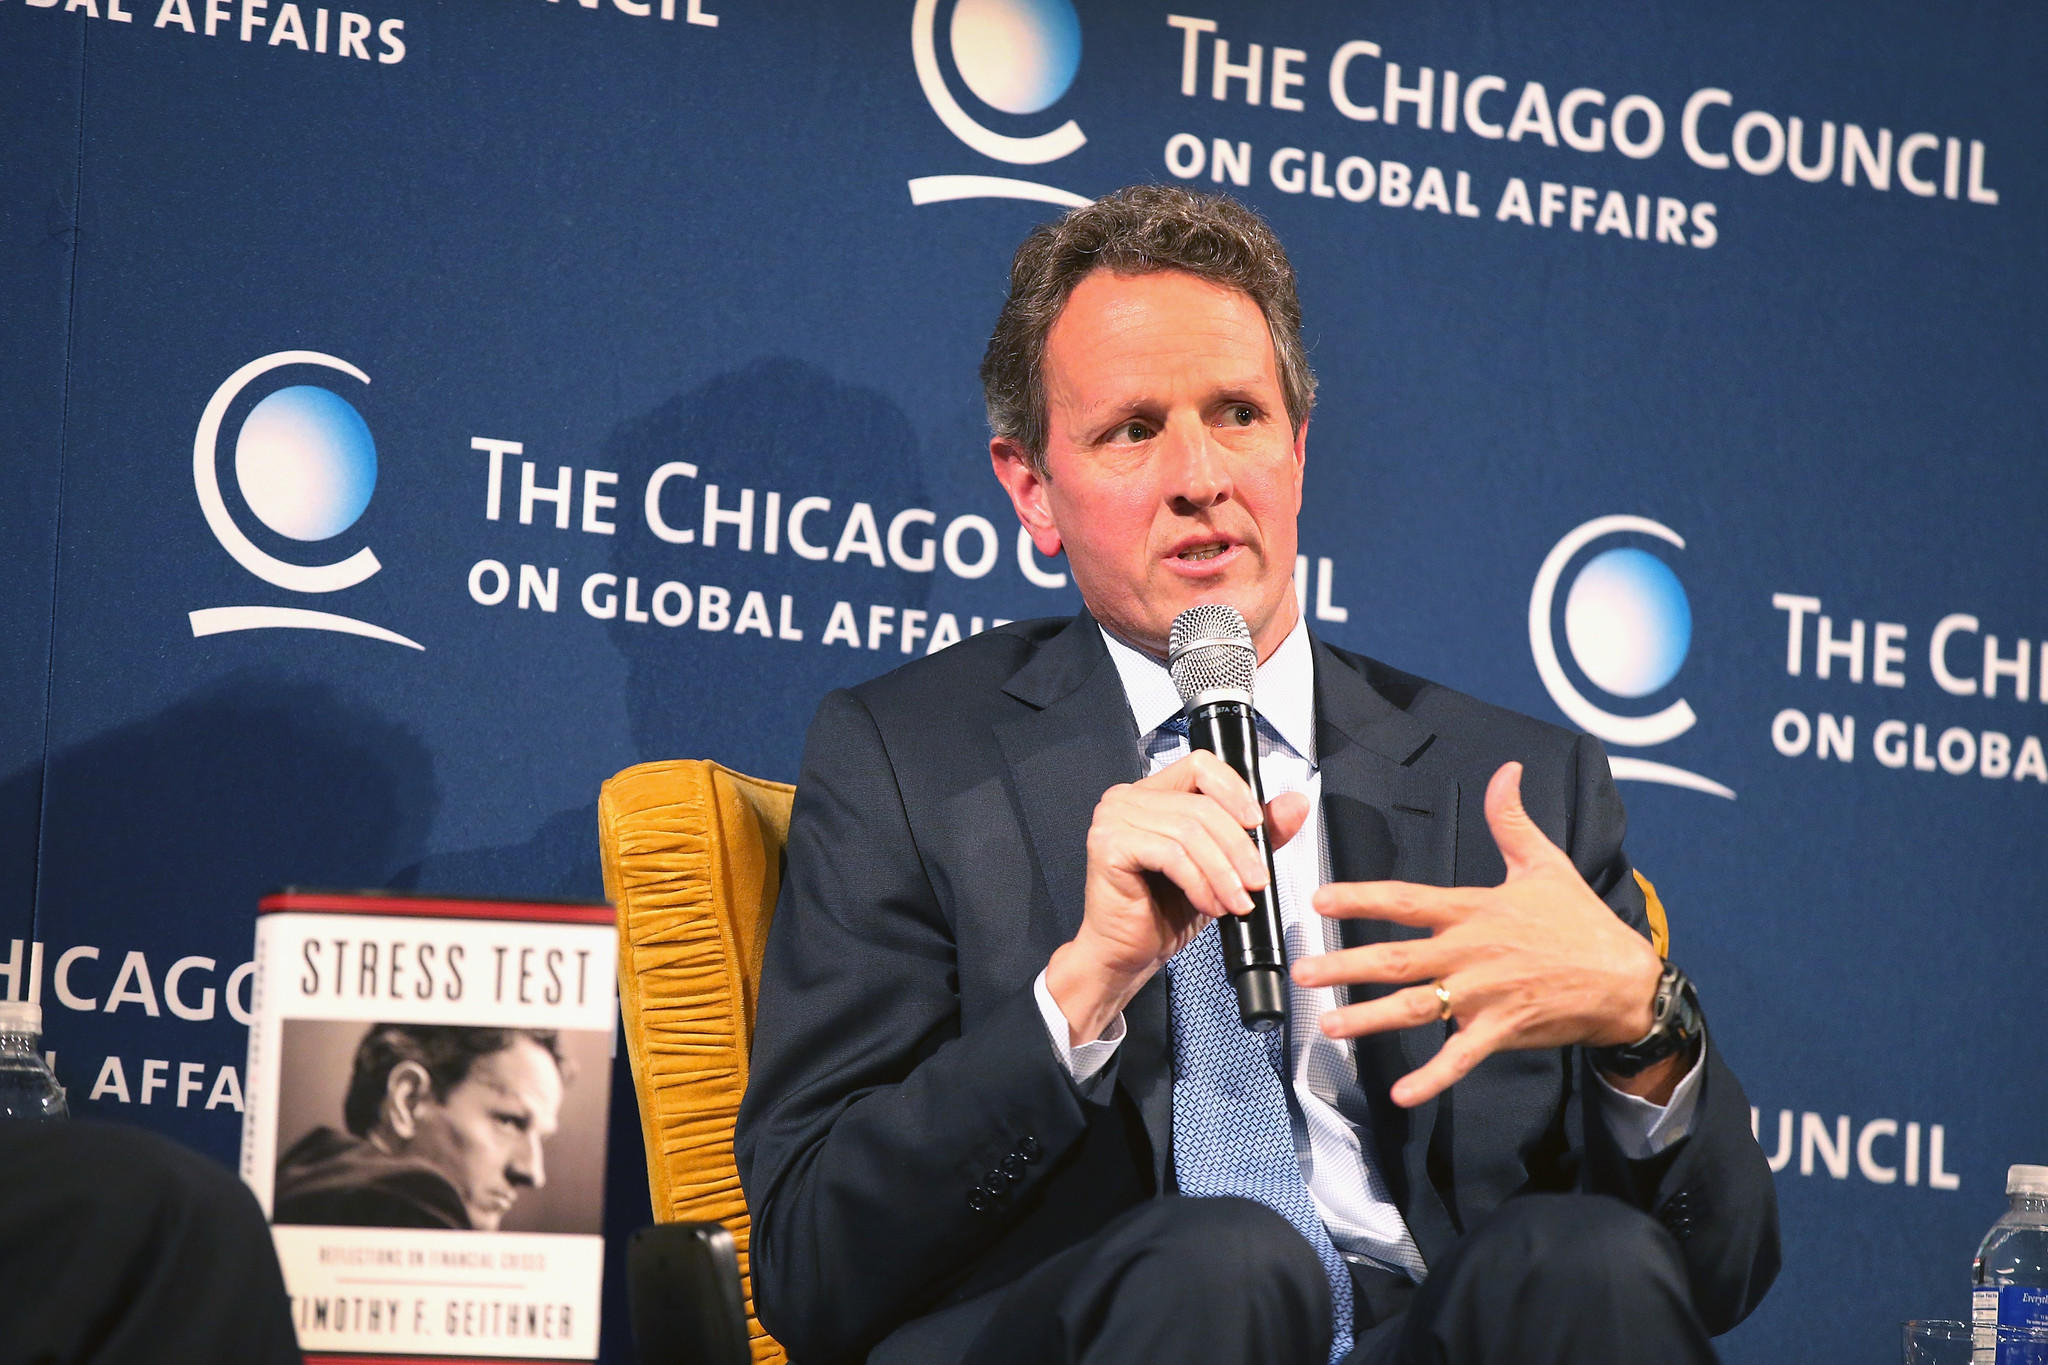 Former U.S. Treasury Secretary Timothy Geithner is interviewed by former U.S. Treasury Secretary Henry Paulson (not pictured) during an event sponsored by Chicago Council on Global Affairs in Chicago.